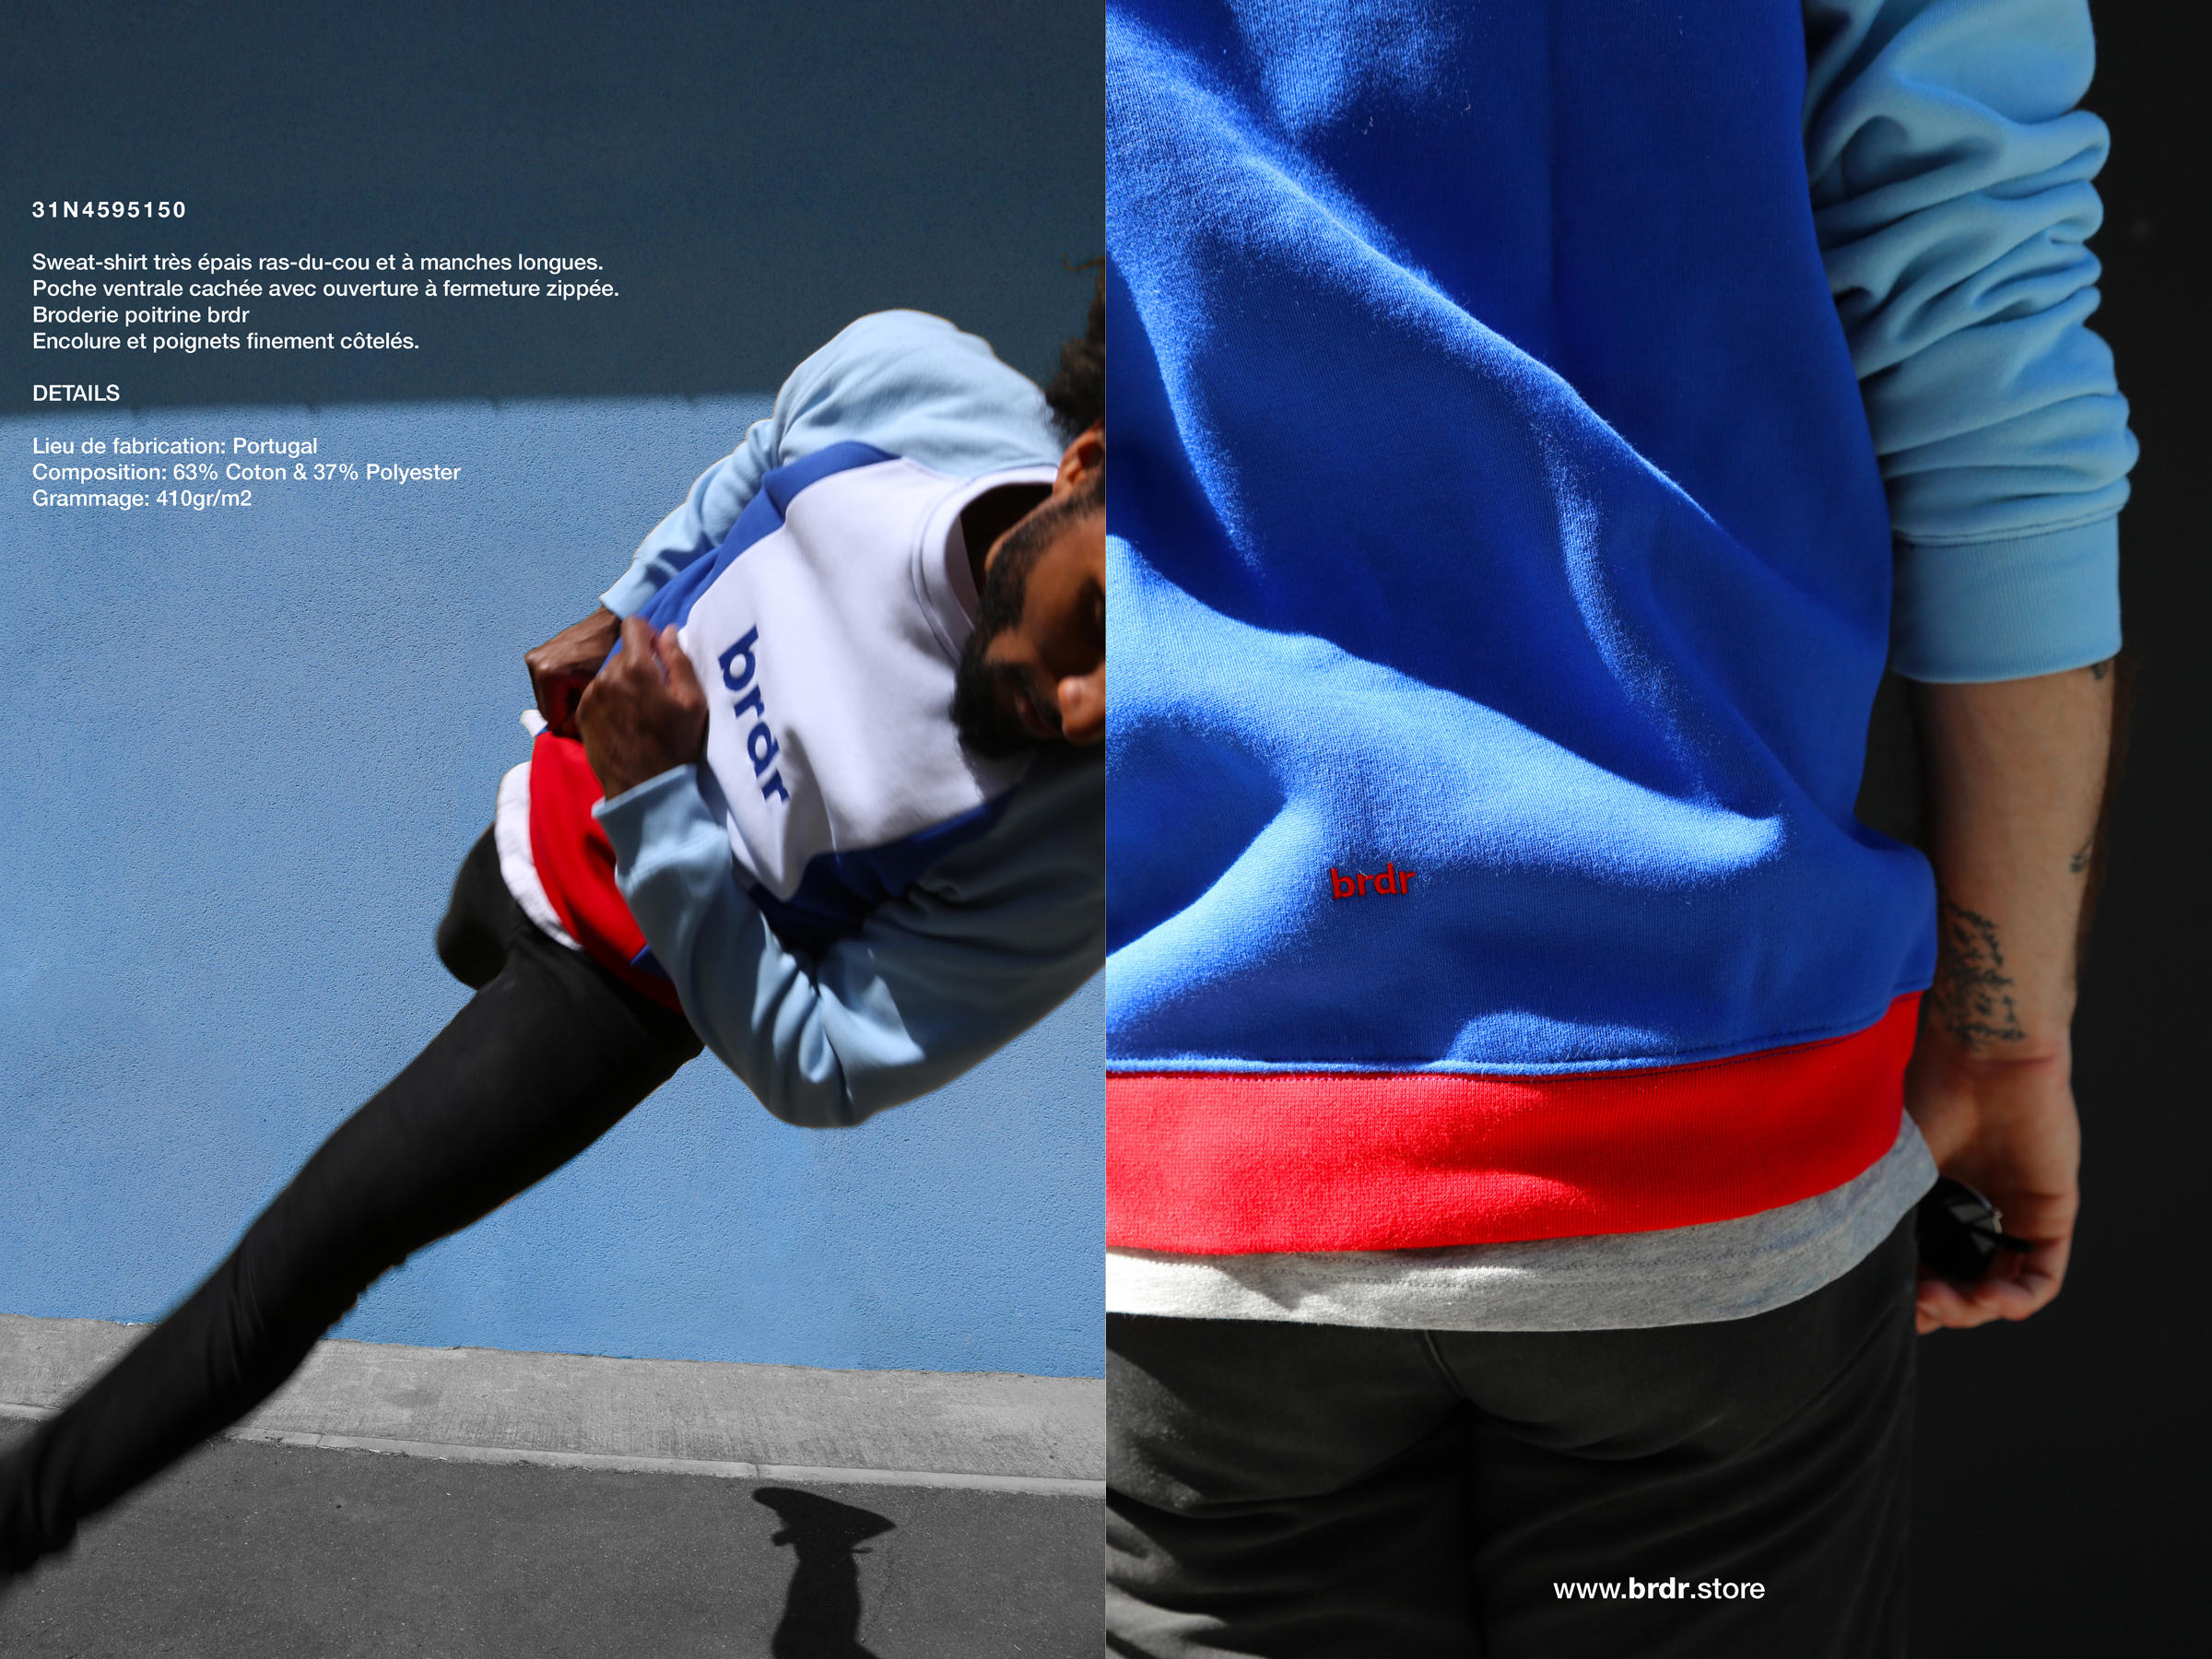 brdr Lookbook page 13